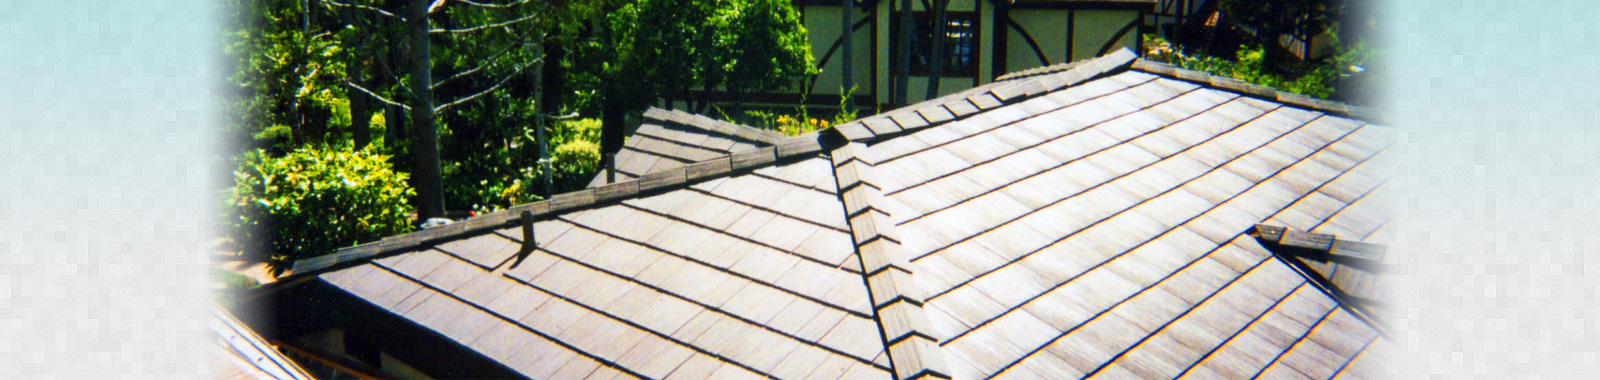 J. Taylor Roofing - Roofing Contractor South Bay Los Angeles, West LA, Southern California